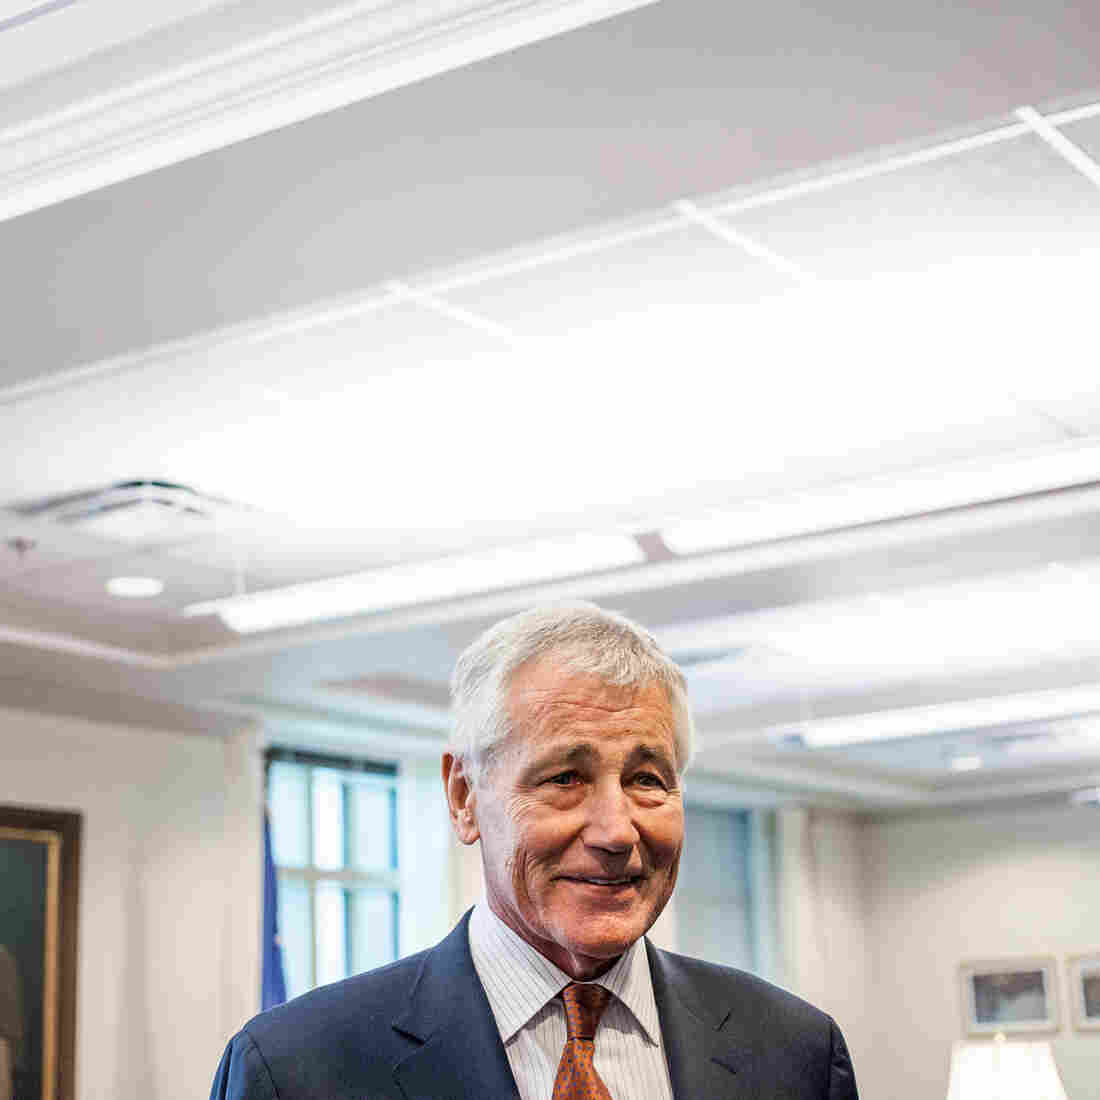 Secretary of Defense Chuck Hagel is shown here in his Pentagon office Friday, before his interview with NPR's Steve Inskeep.